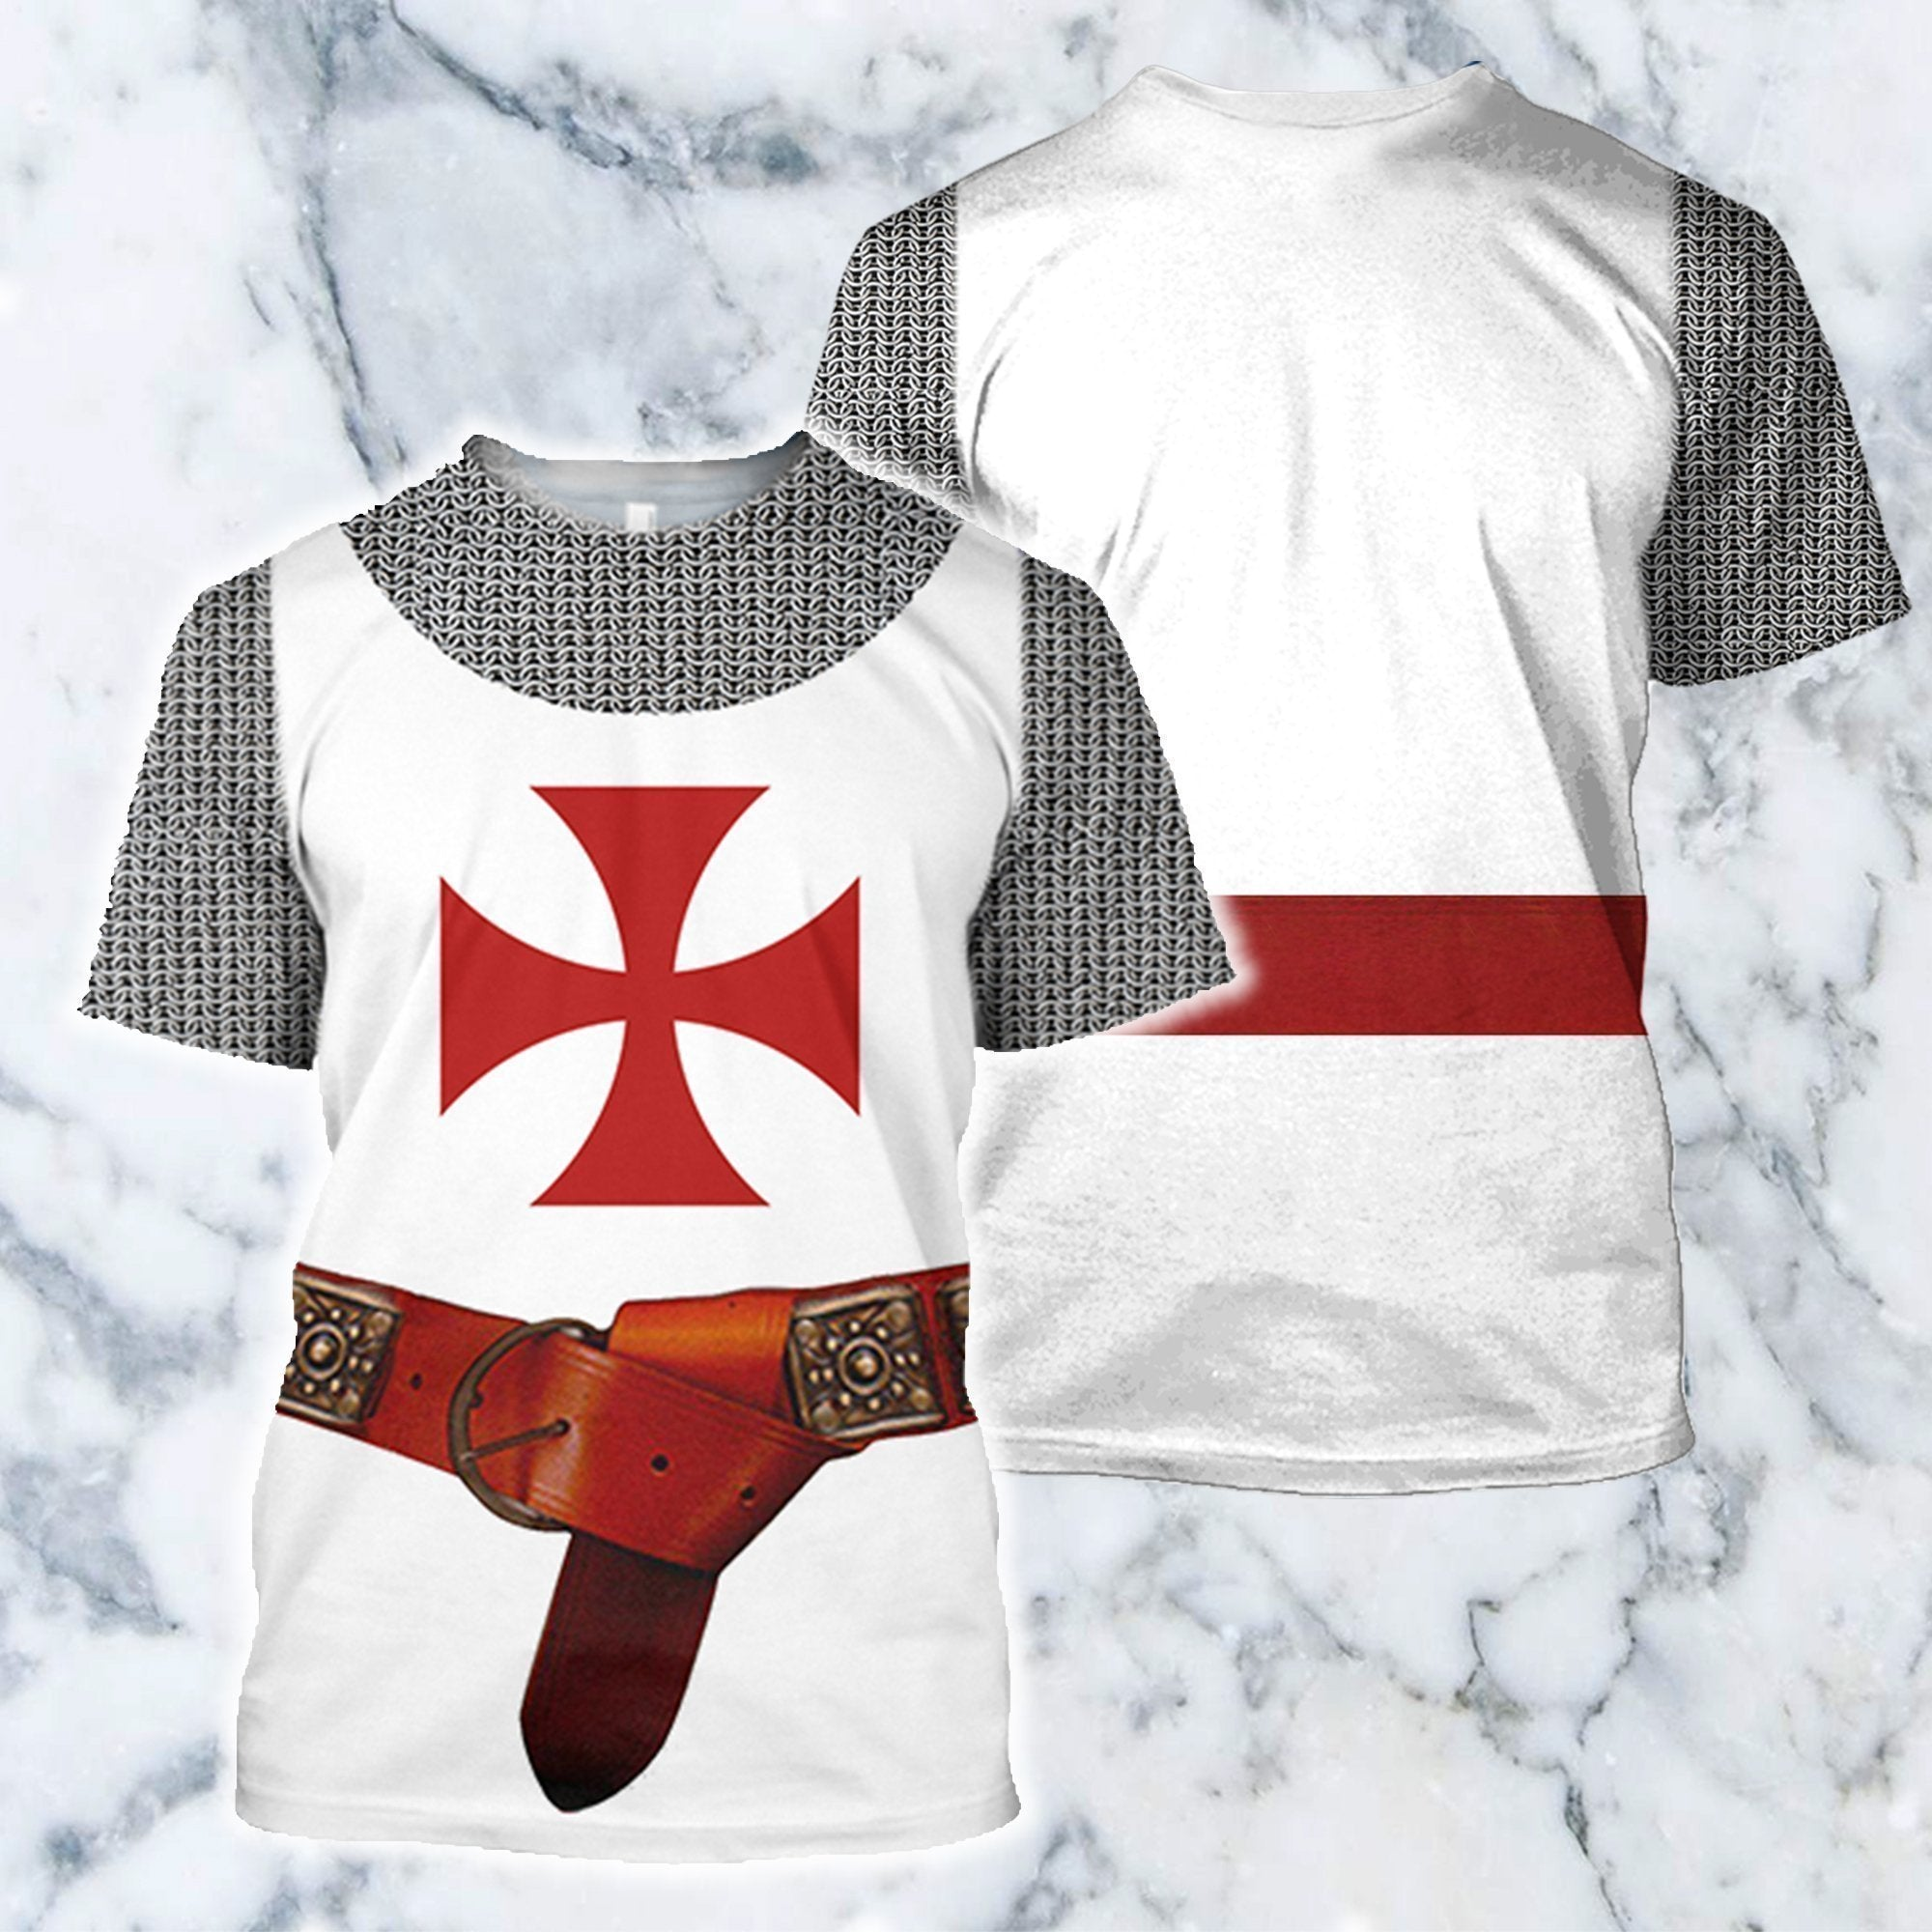 3D All Over Printed Knights Templar Tops - Amaze Style™